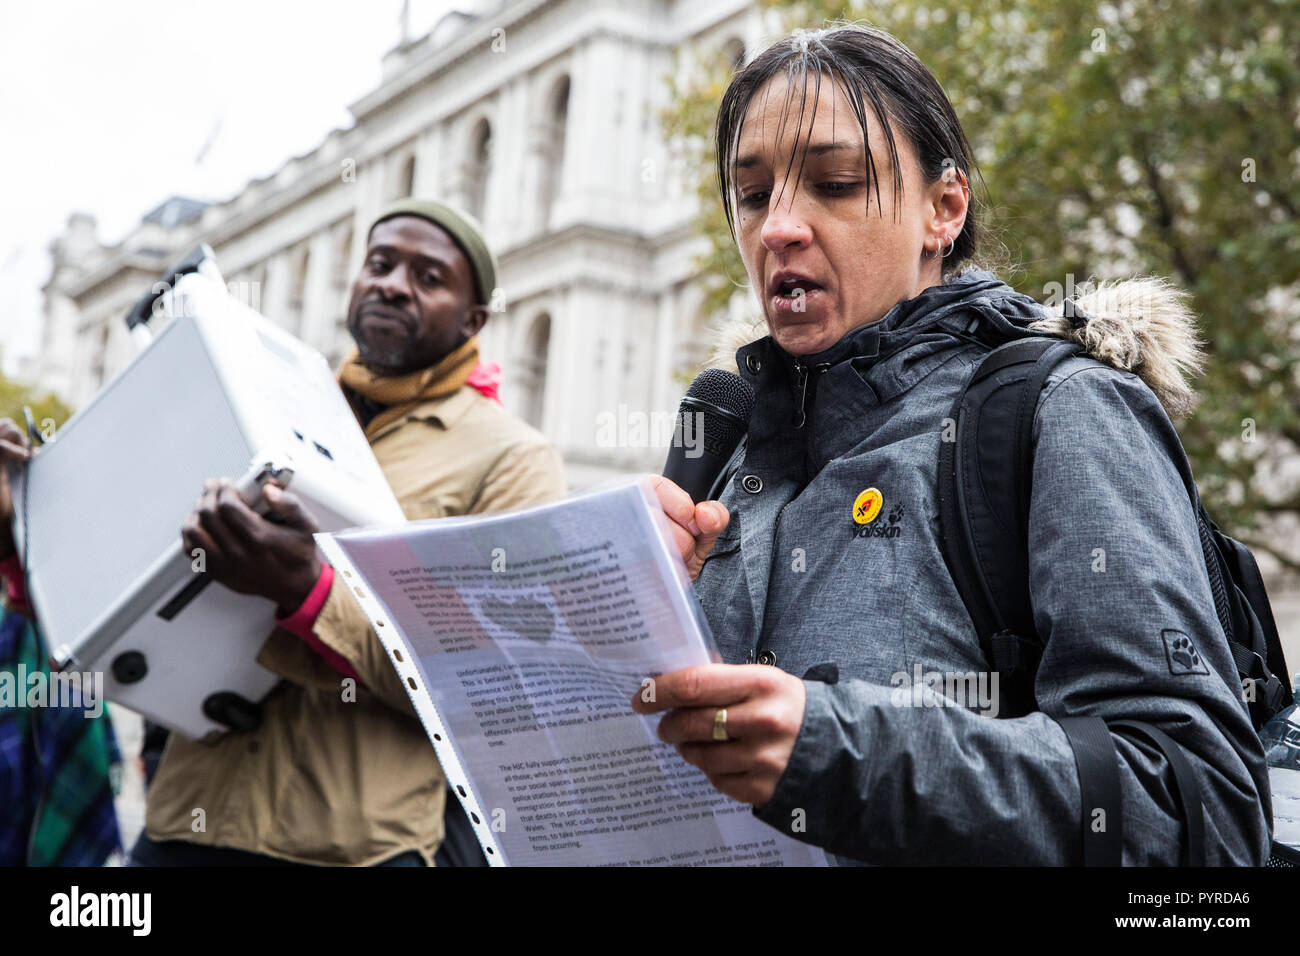 London, UK. 27th October, 2018. Becky Shah of the Hillsborough Justice Campaign, daughter of Inger Shah, addresses campaigners from the UFFC. - Stock Image